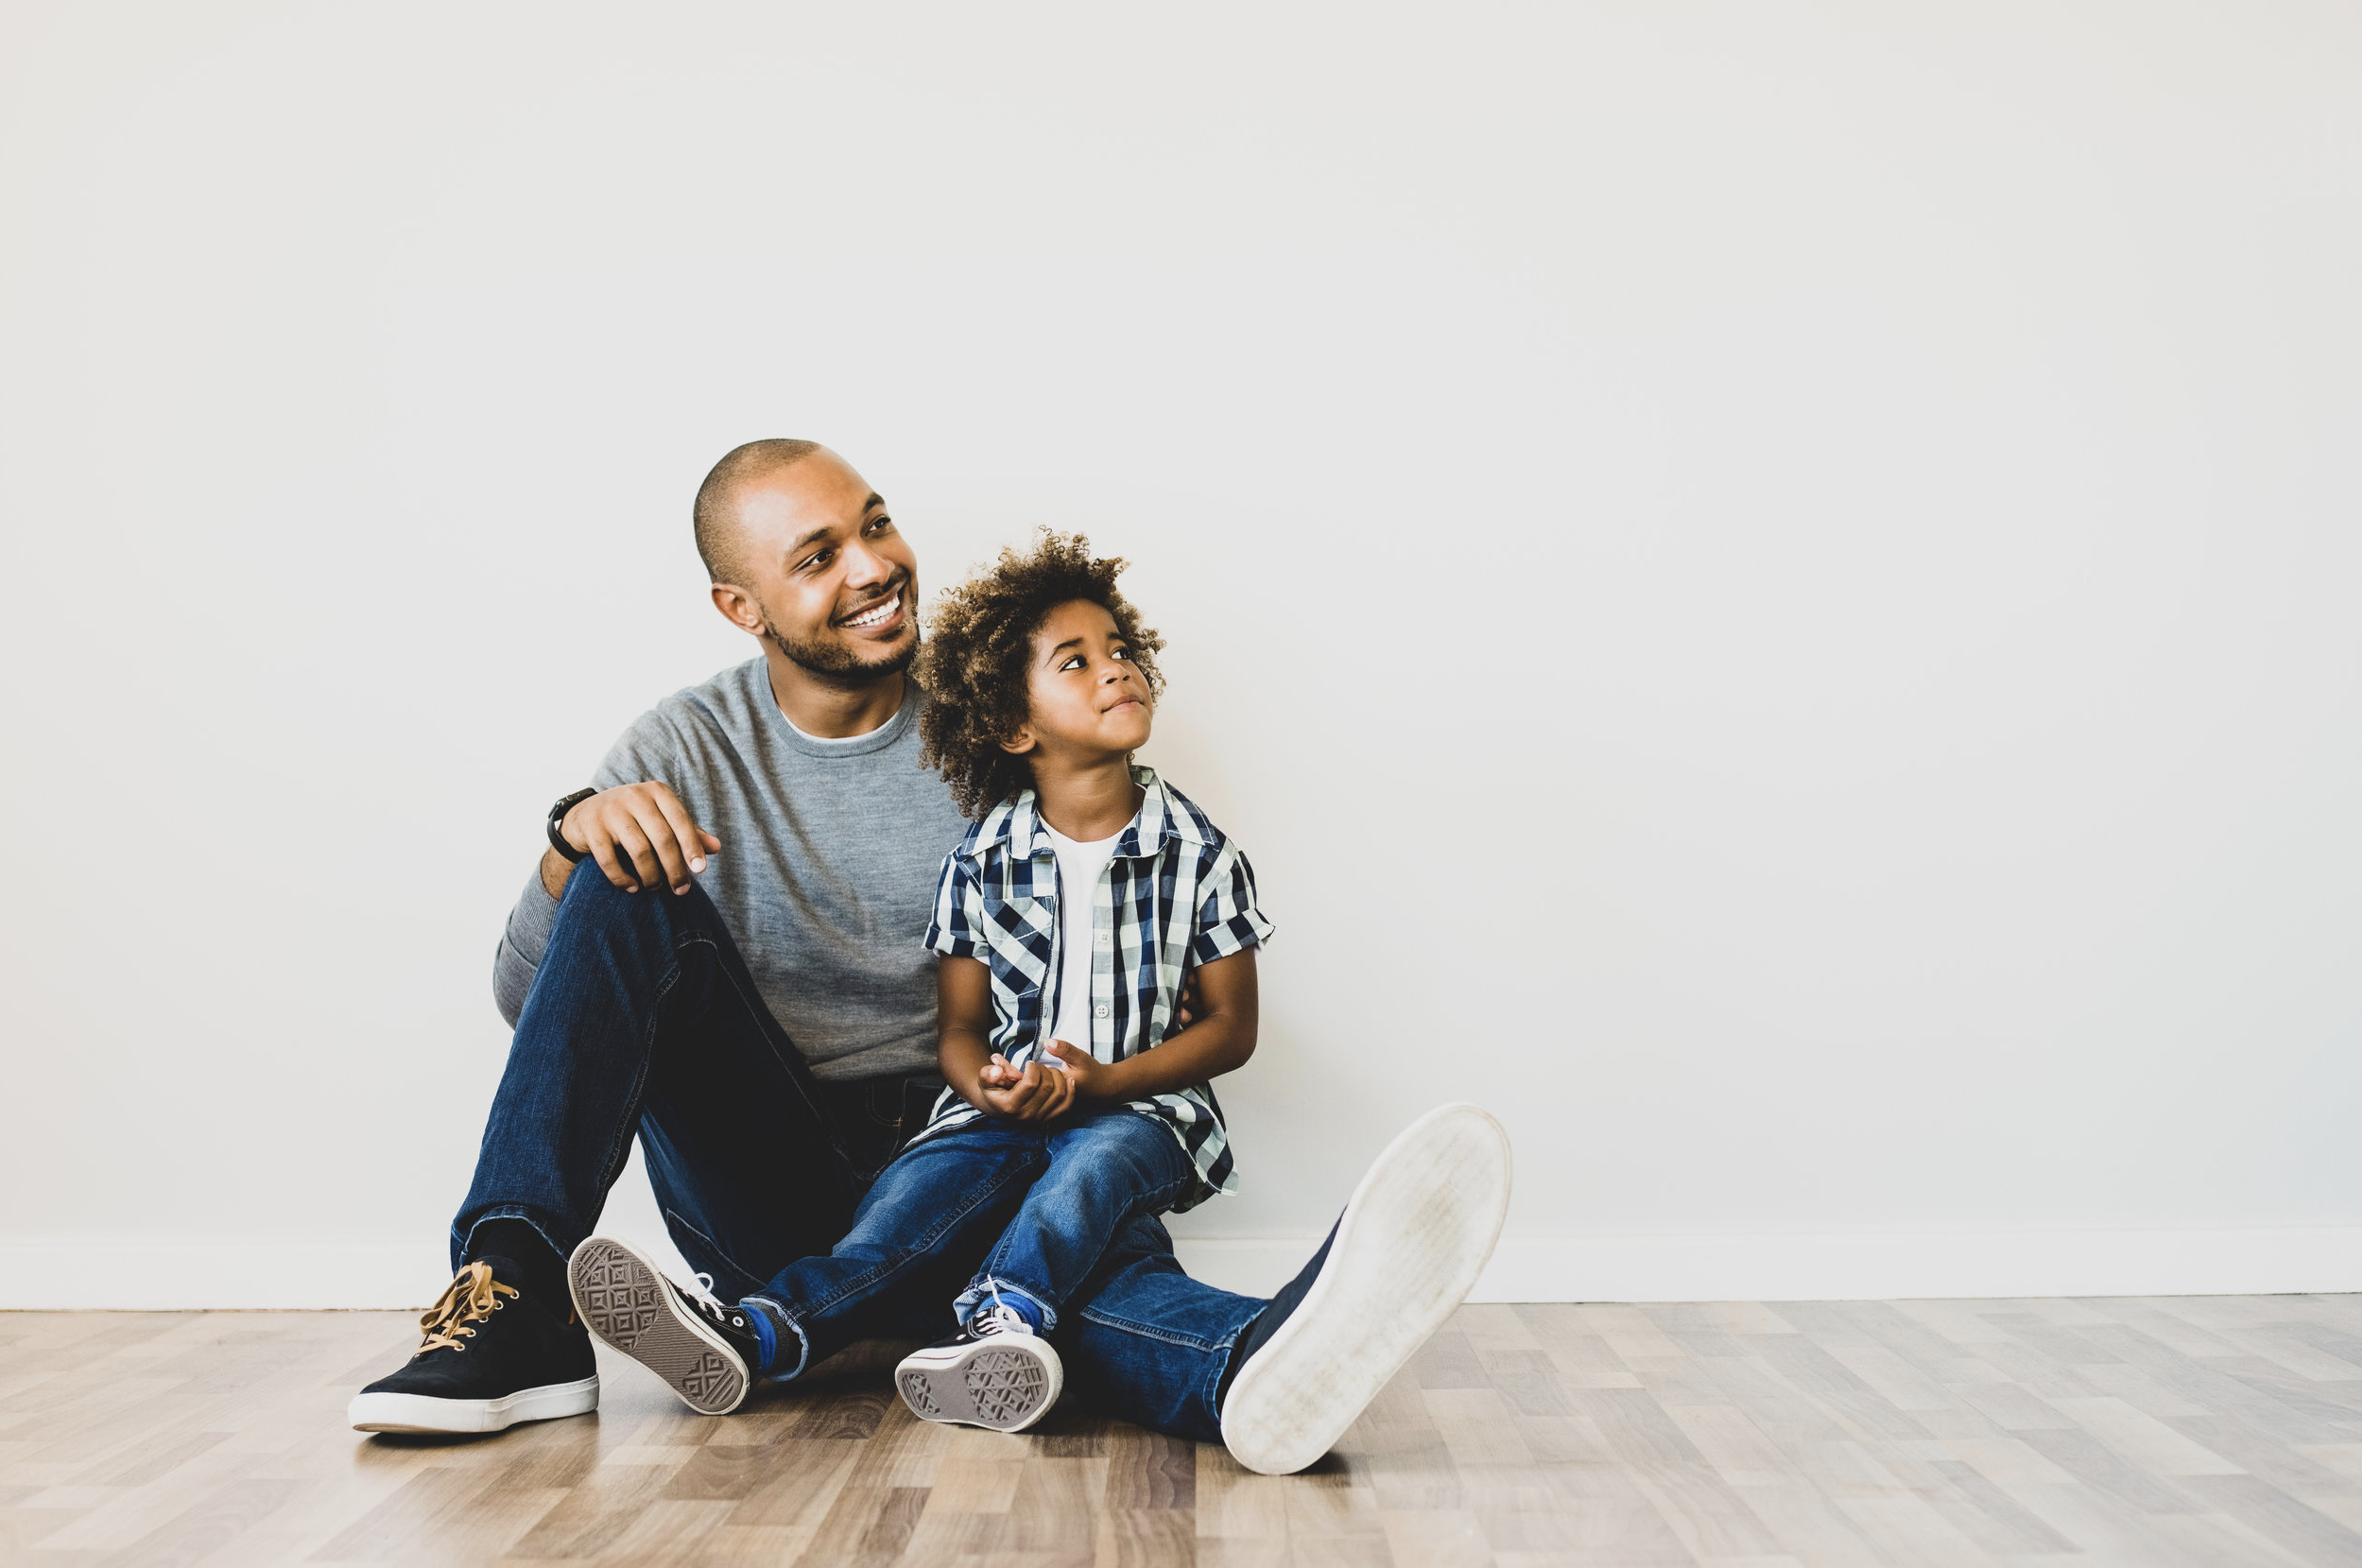 Fertility for Men - From structural abnormalities to priceless peace of mind, our fertility treatment for men pairs seamlessly with traditional infertility treatments to assist with:• Energy, libido, and stress support• Low sperm volume• Abnormalities in sperm quality• Erectile Dysfunction